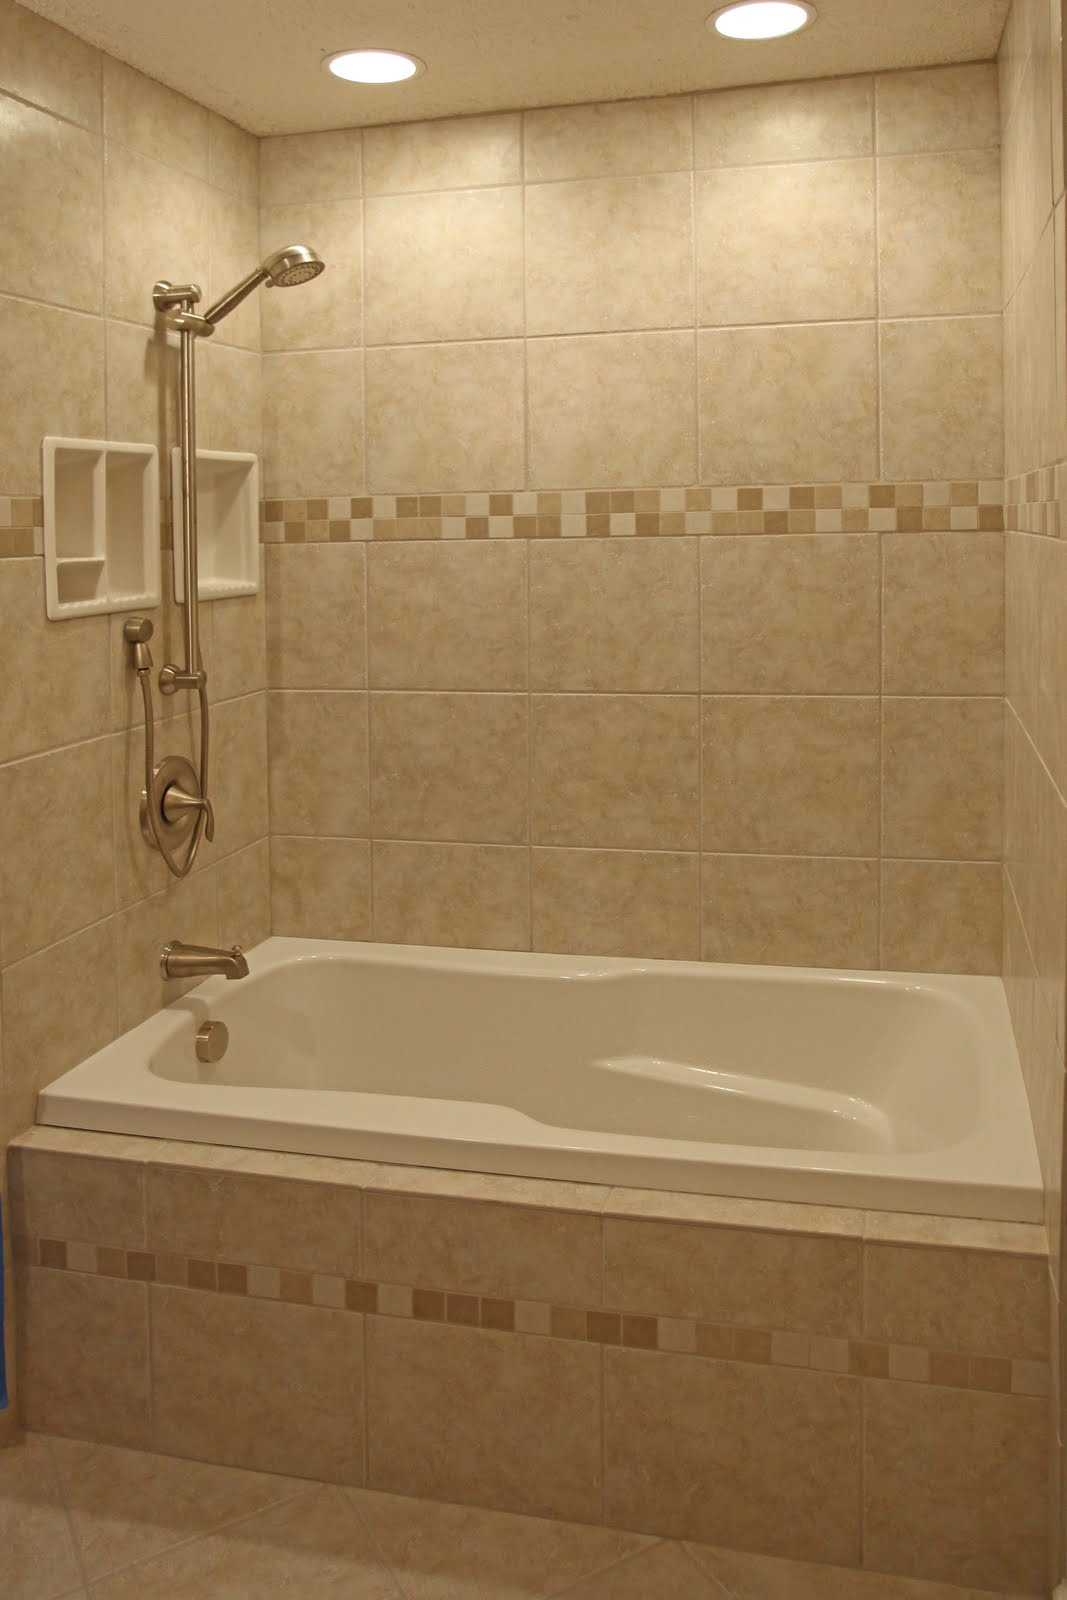 Bathroom remodeling design ideas tile shower niches for Bathroom tile designs gallery